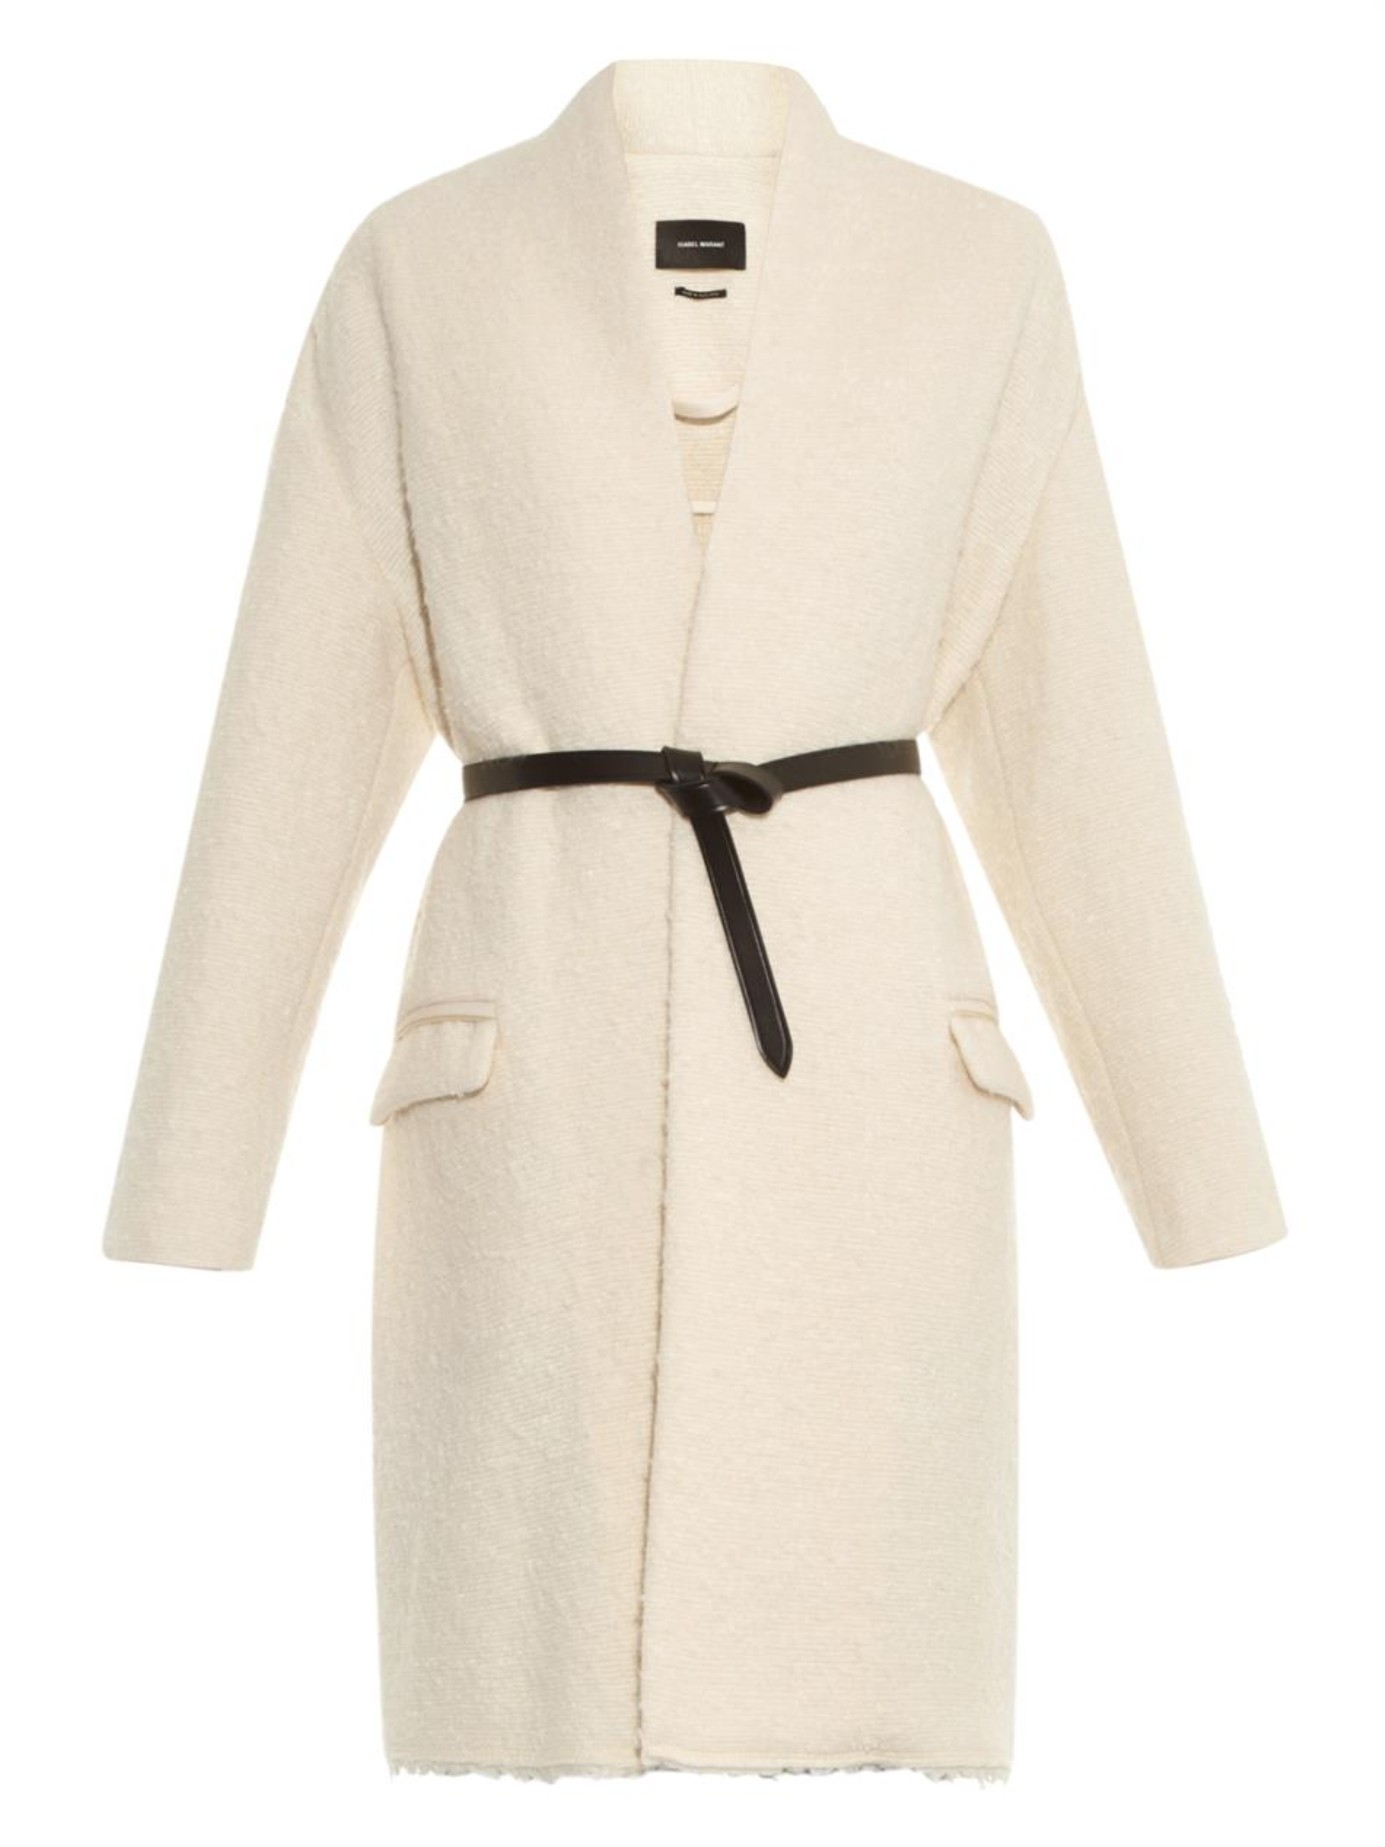 Isabel marant Seal Wool-Blend Cocoon Coat in Natural | Lyst